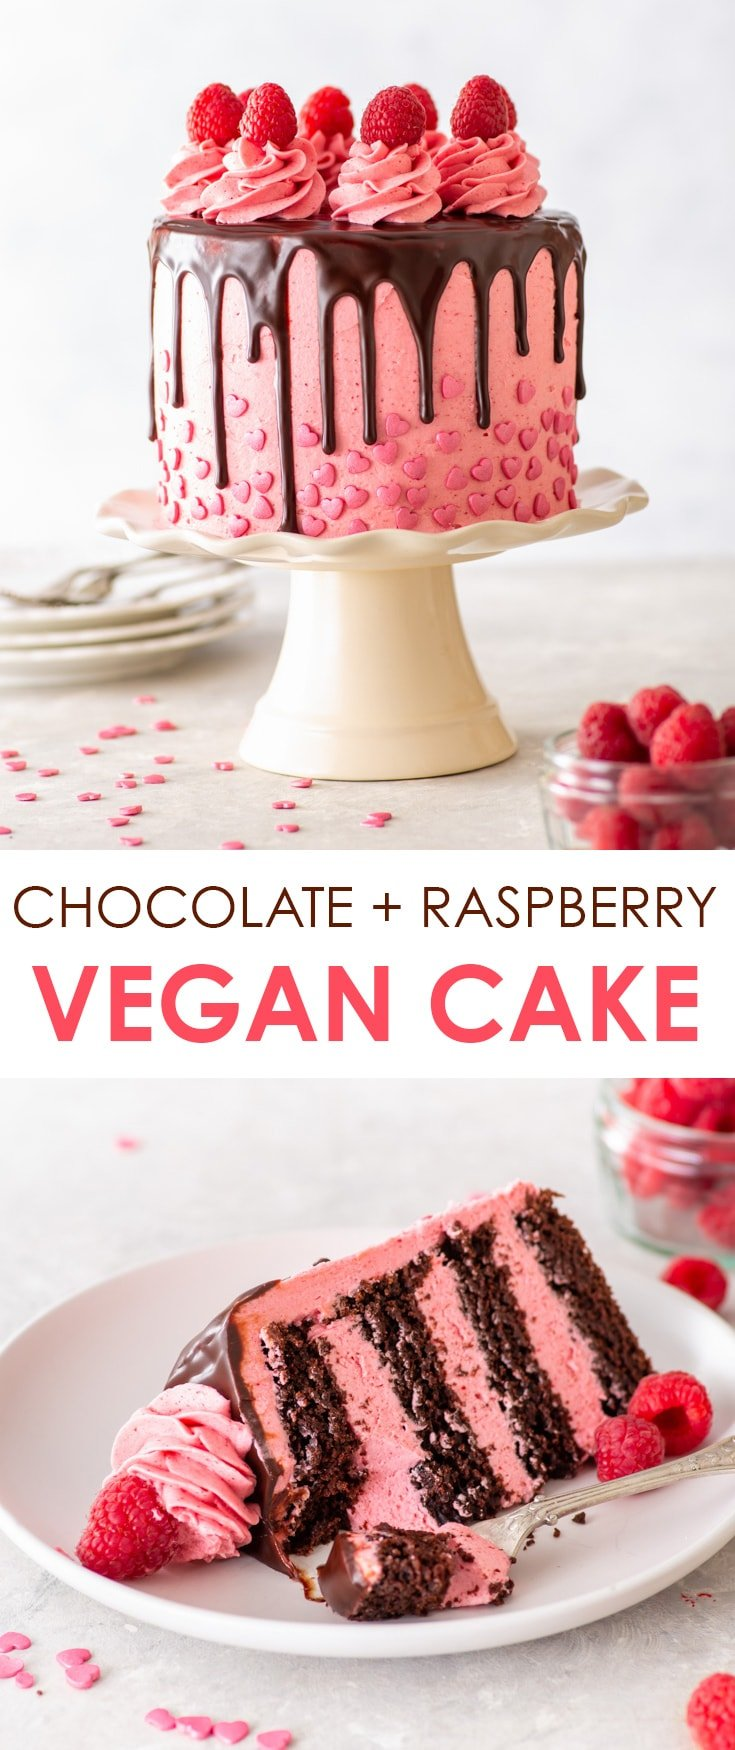 Vegan Chocolate Raspberry Cake [SPONSORED] - Meet your new favourite vegan layer cake. It's the perfect Valentine's Day dessert – but omit the heart sprinkles, and you've got yourself a vegan showstopper for any day of the year. It's easy to make, requires no egg replacements and every bite will send you straight to chocolate + raspberry heaven. Vegan cake recipe. Vegan desserts. Vegan chocolate ganache. Vegan buttercream frosting. Chocolate cake recipe. #vegan #cake